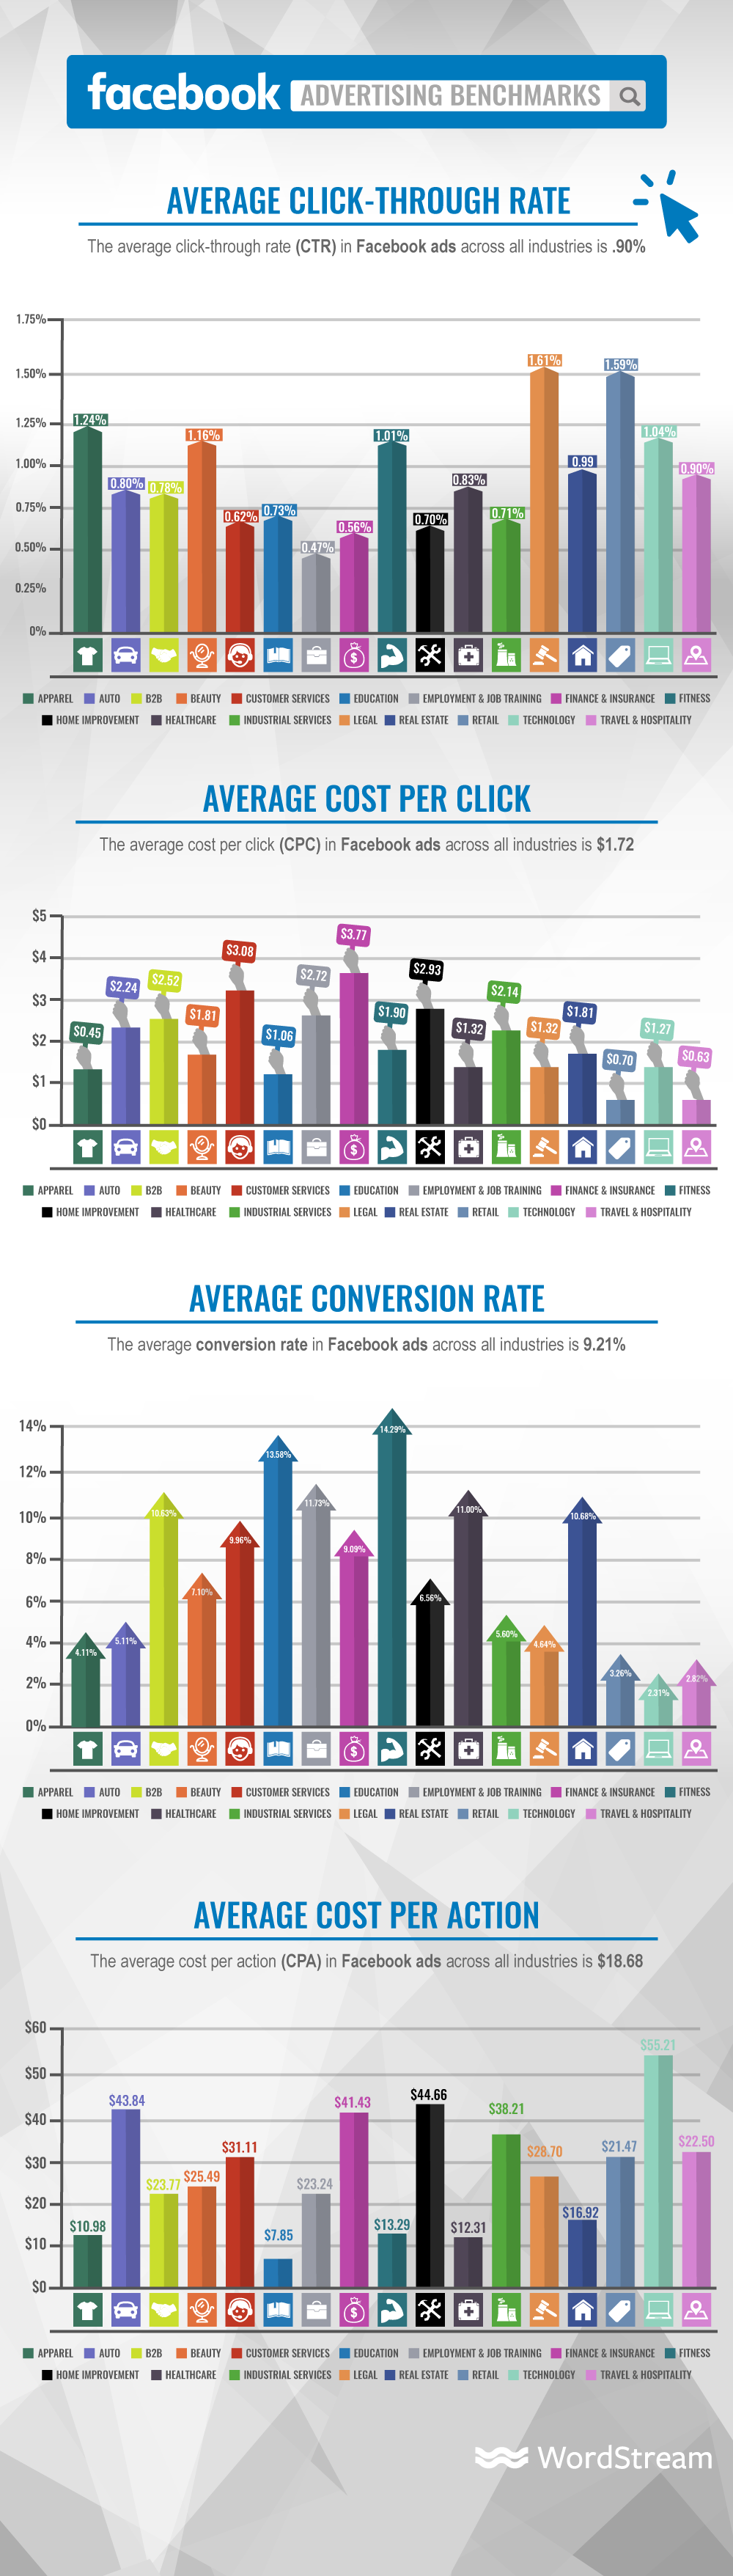 facebook ad performance benchmarks